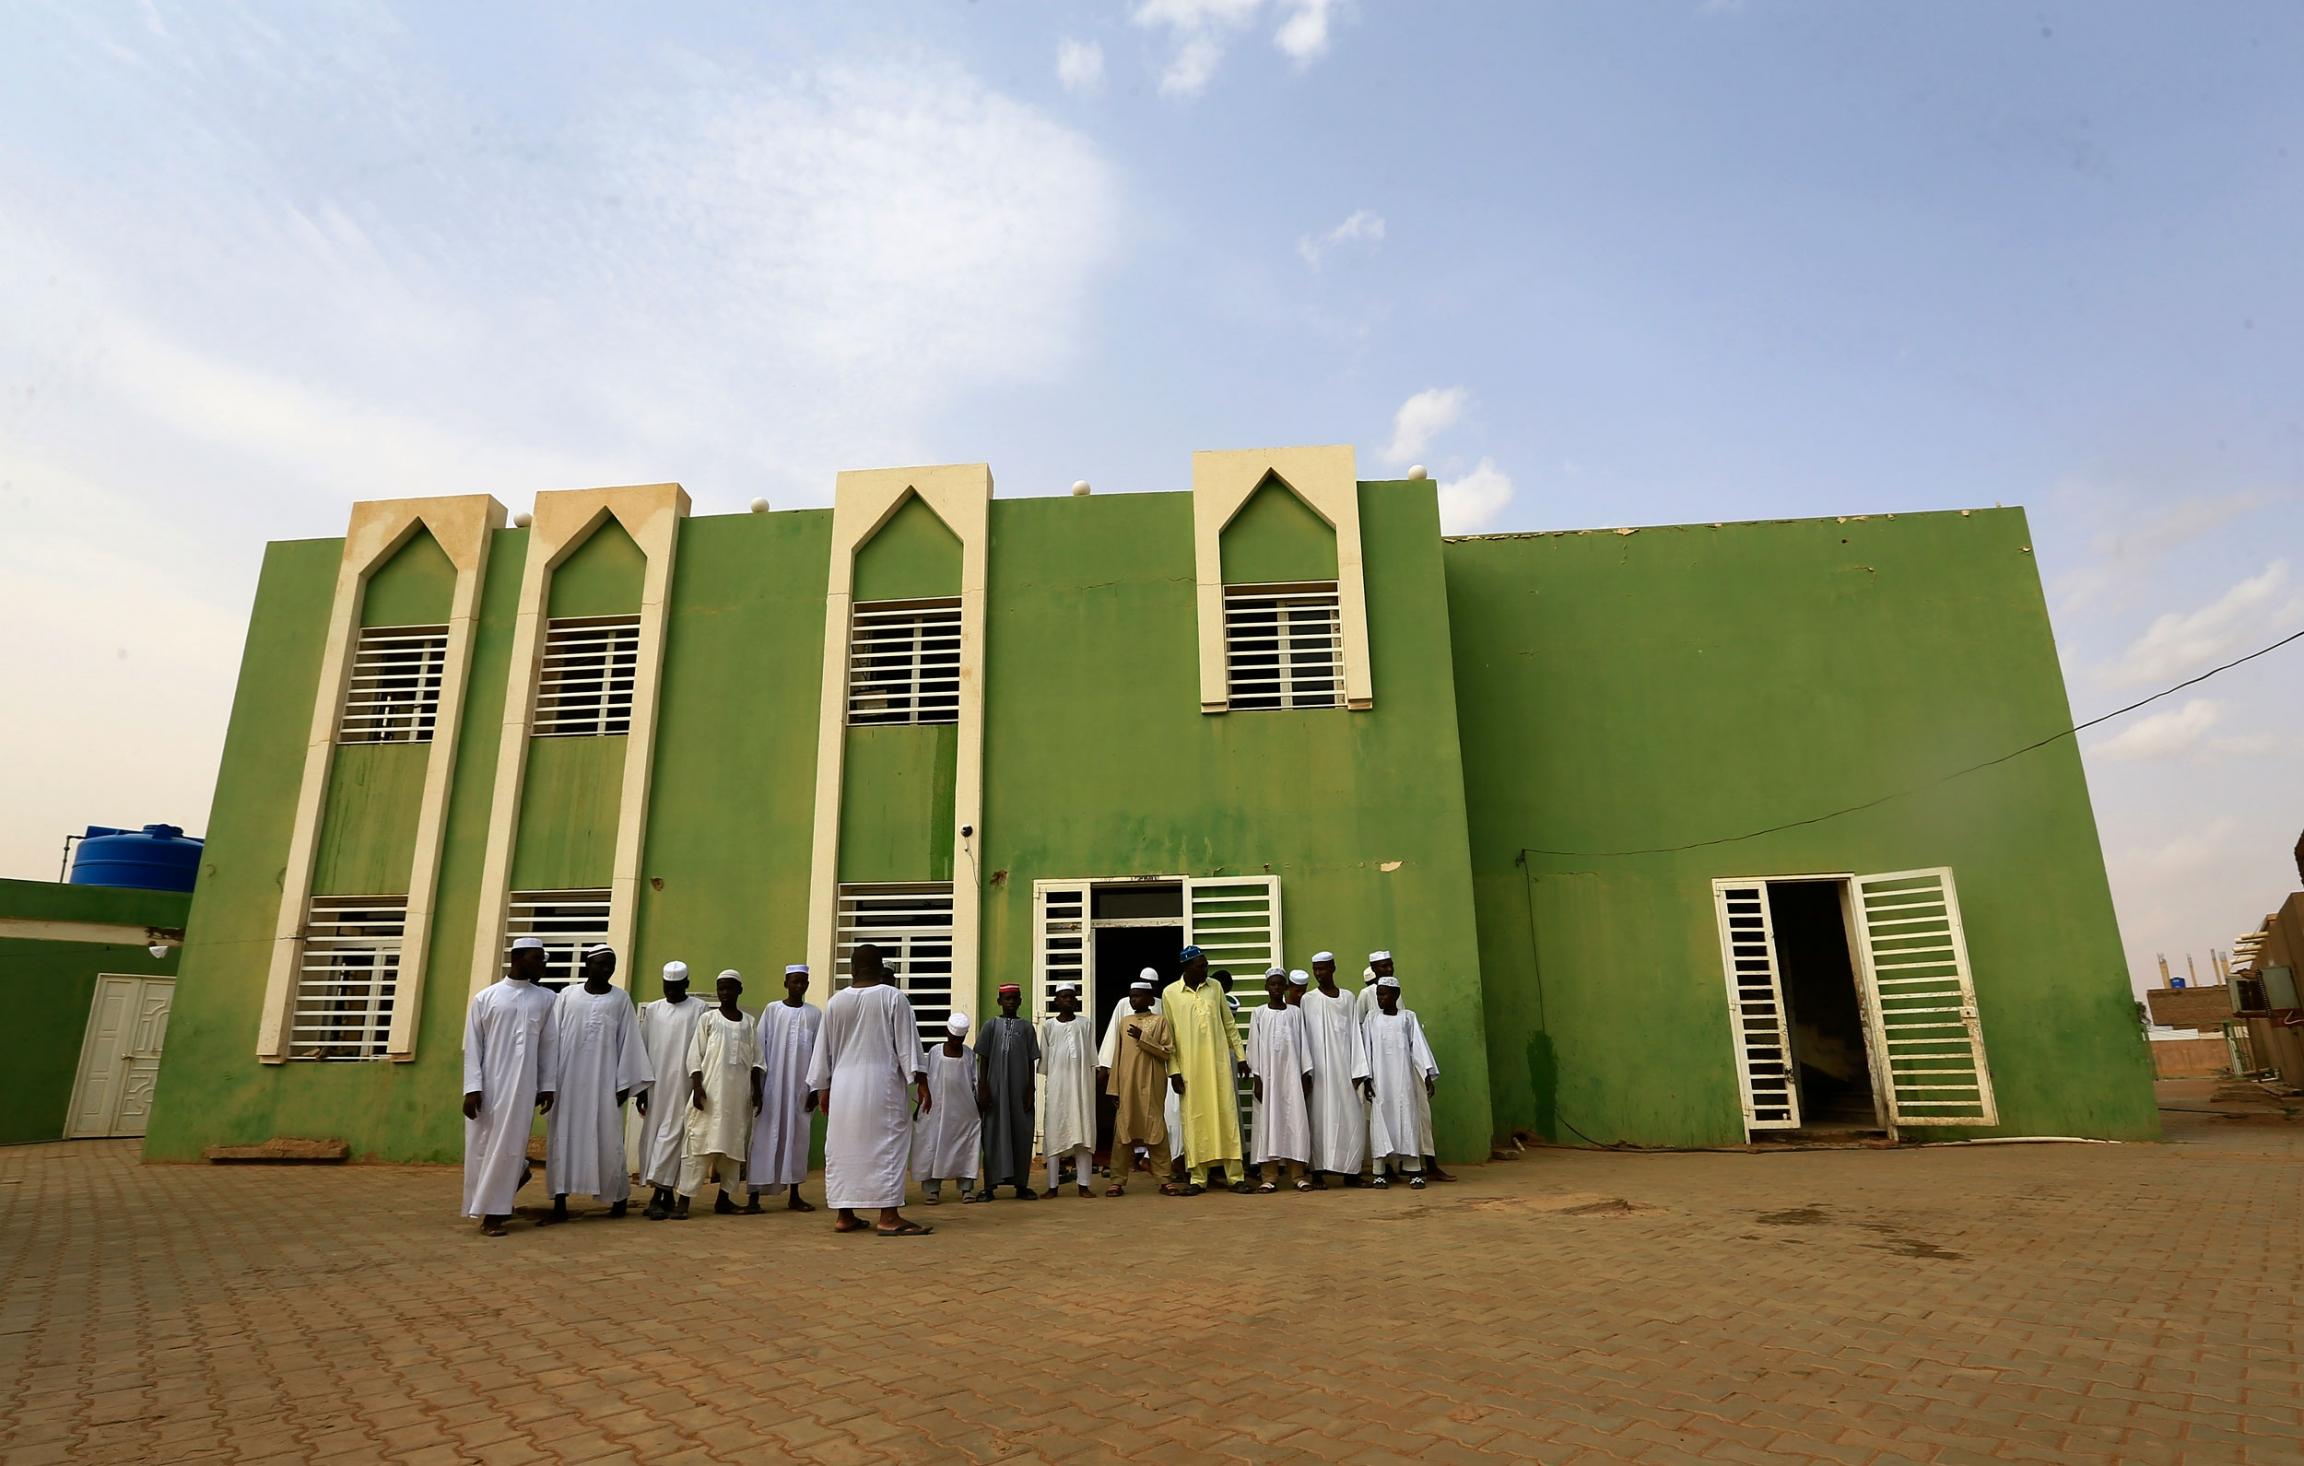 A group of men are shown in traditional Islamic robes outside of the green facade of the Haj Yousif Mosque.